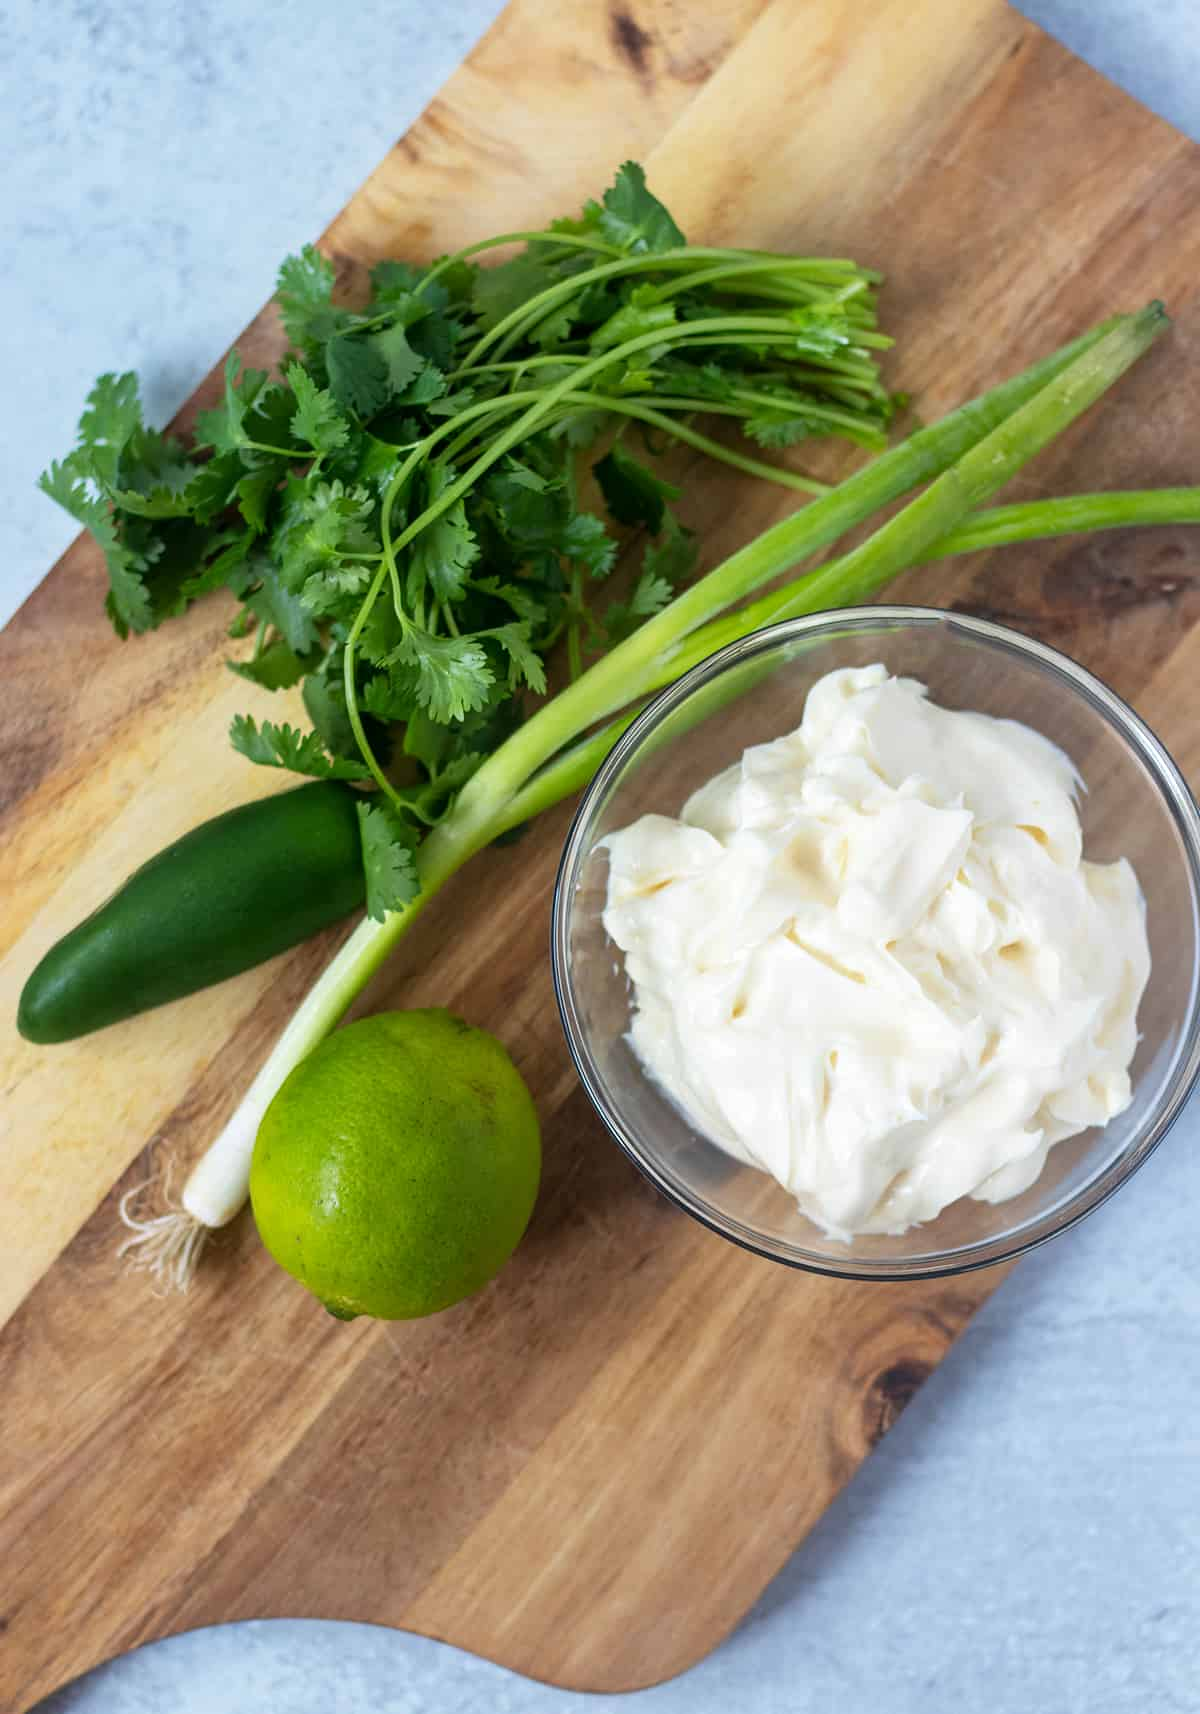 Cilanto, jalapeno, green onion, lime and mayo